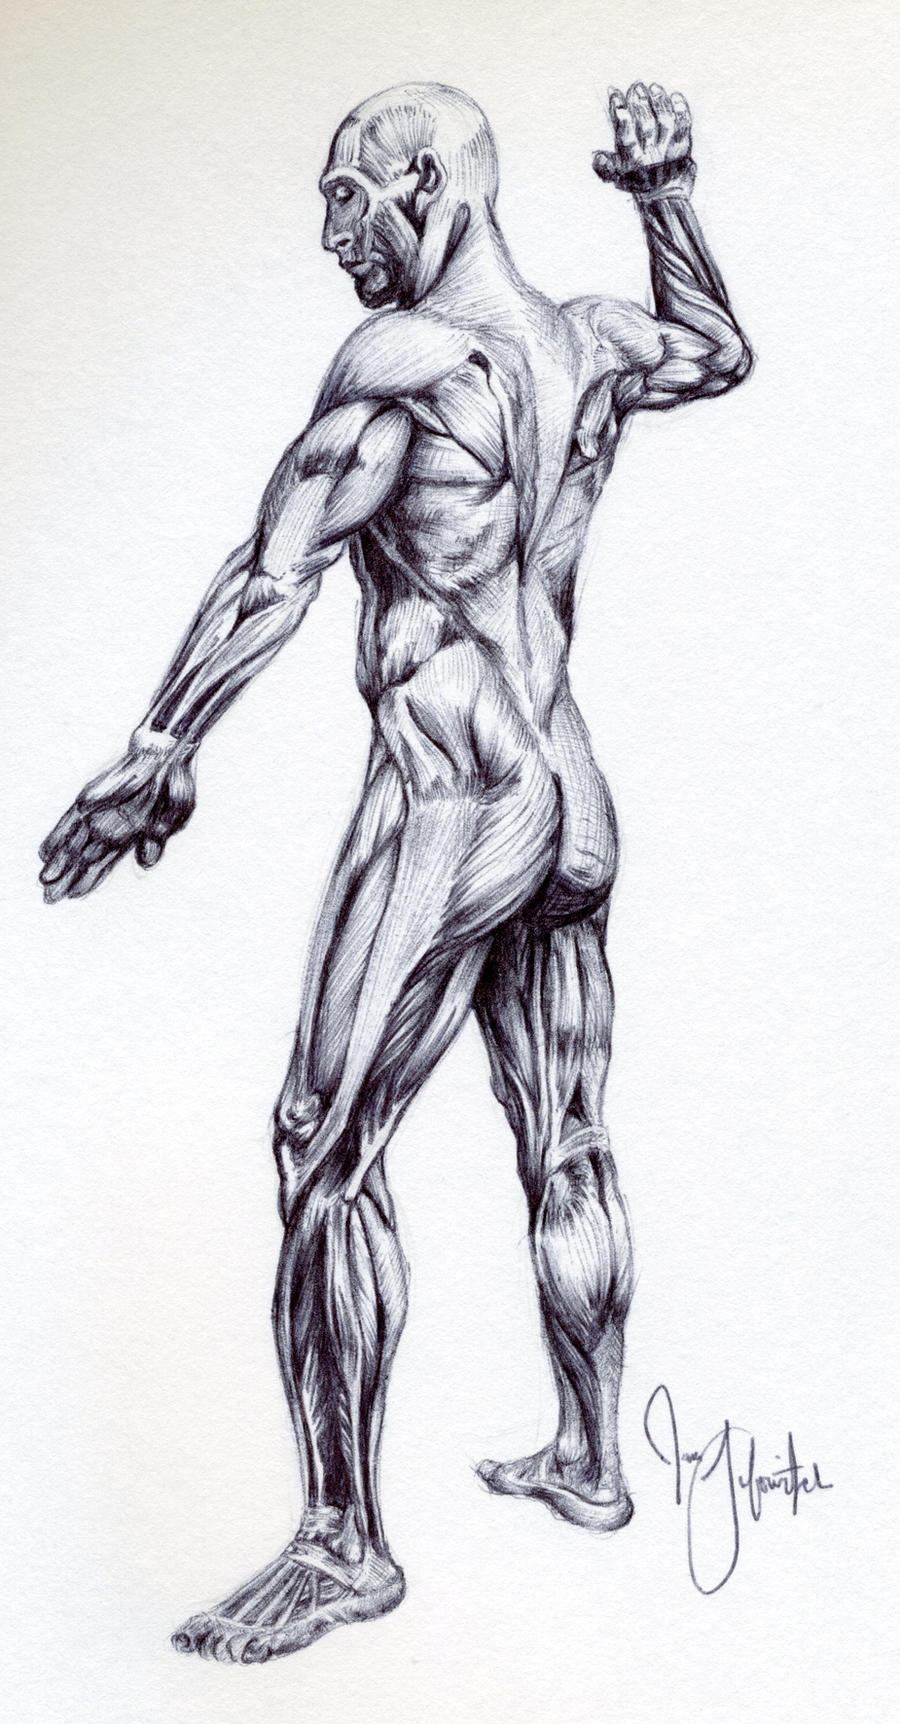 Male muscular anatomy sketch by pikajane on DeviantArt